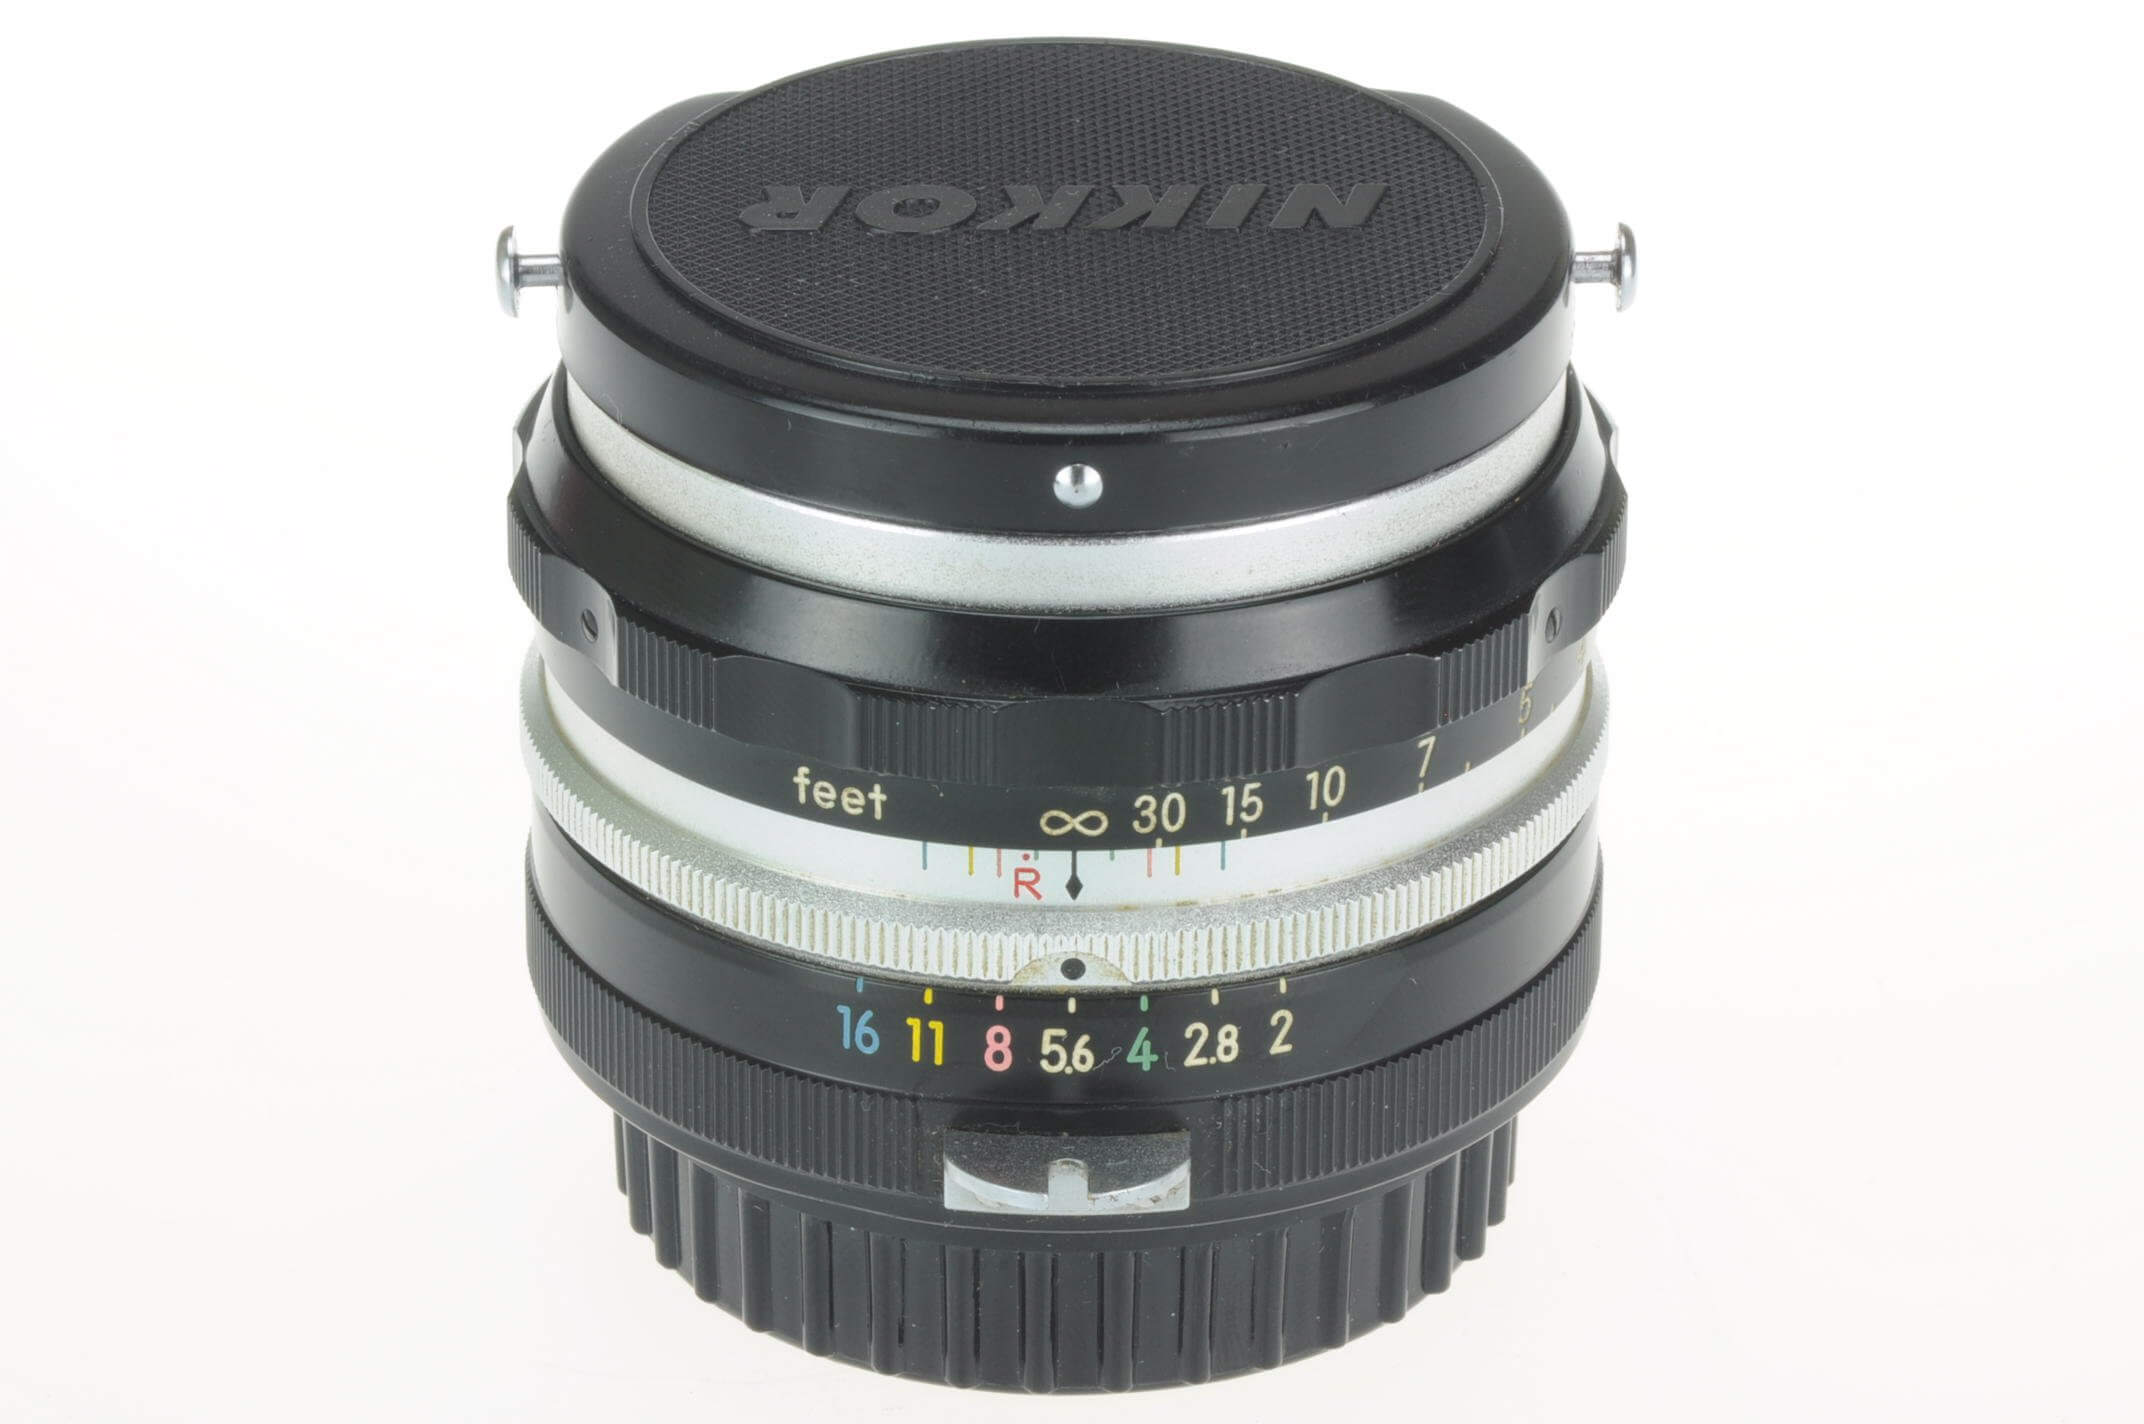 Nikon 5cm f2 'tick mark' Nikkor, very early and very rare! Gorgeous condition!